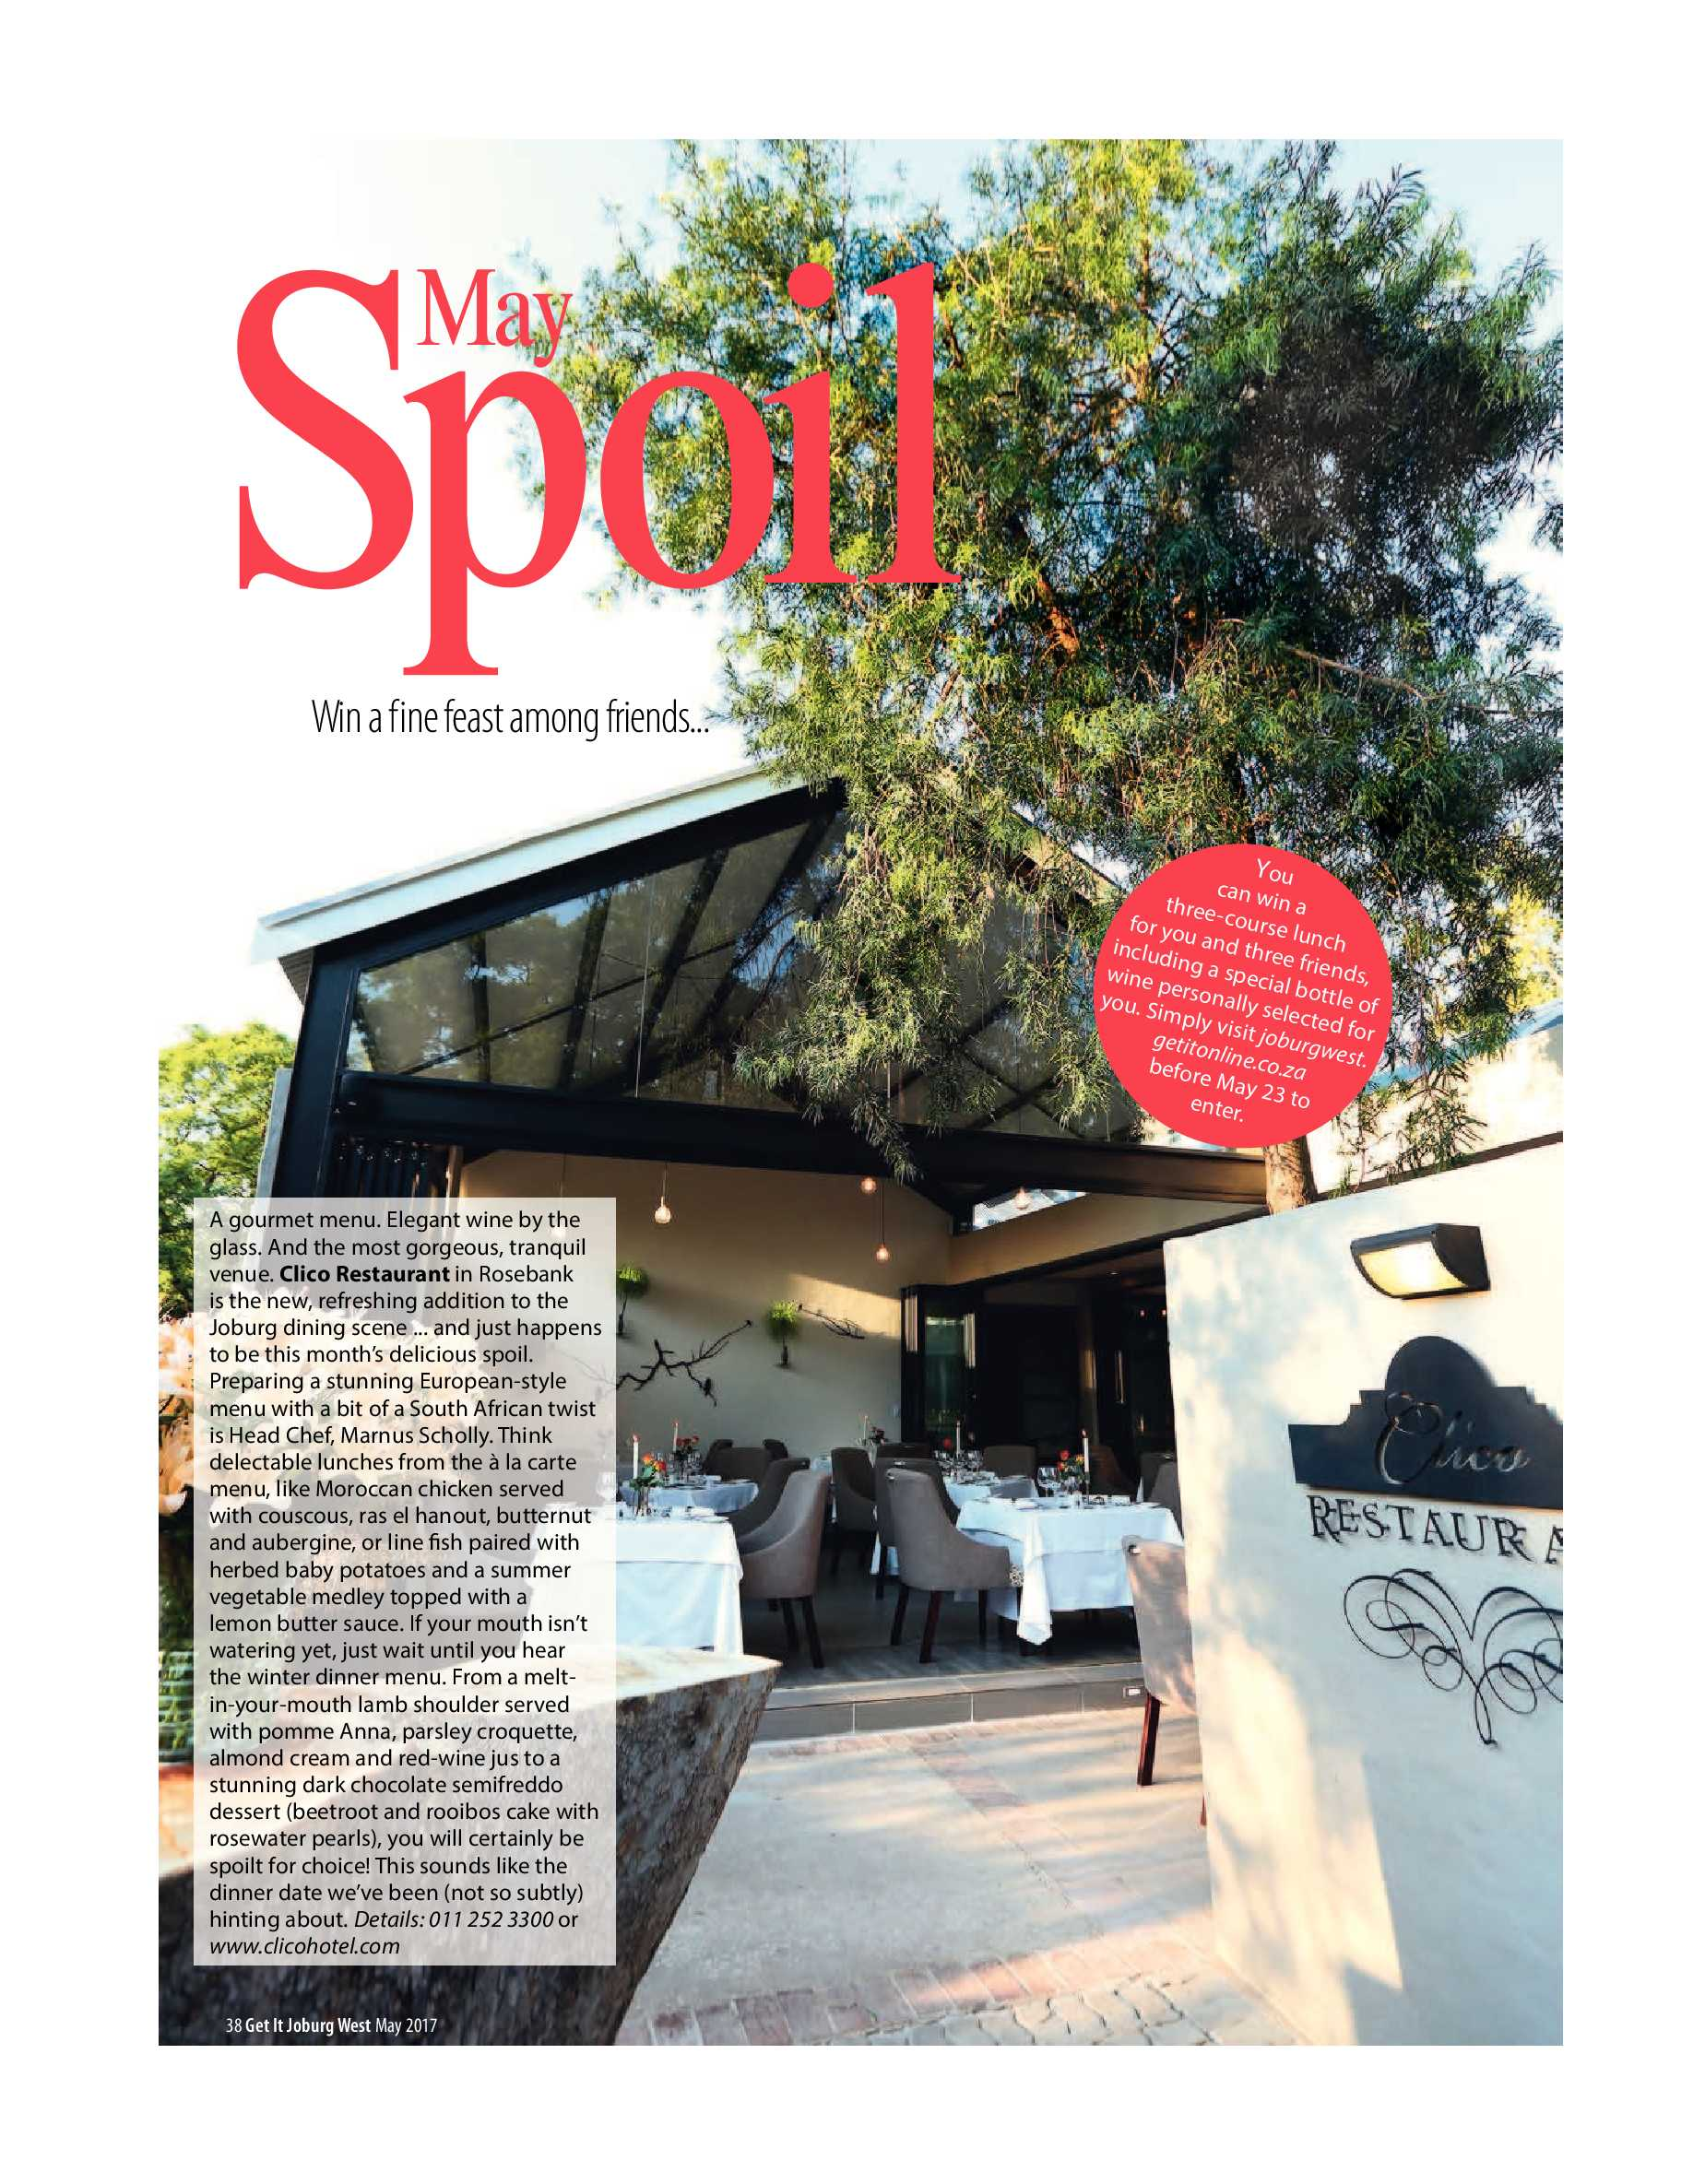 get-joburg-west-may-2017-epapers-page-38